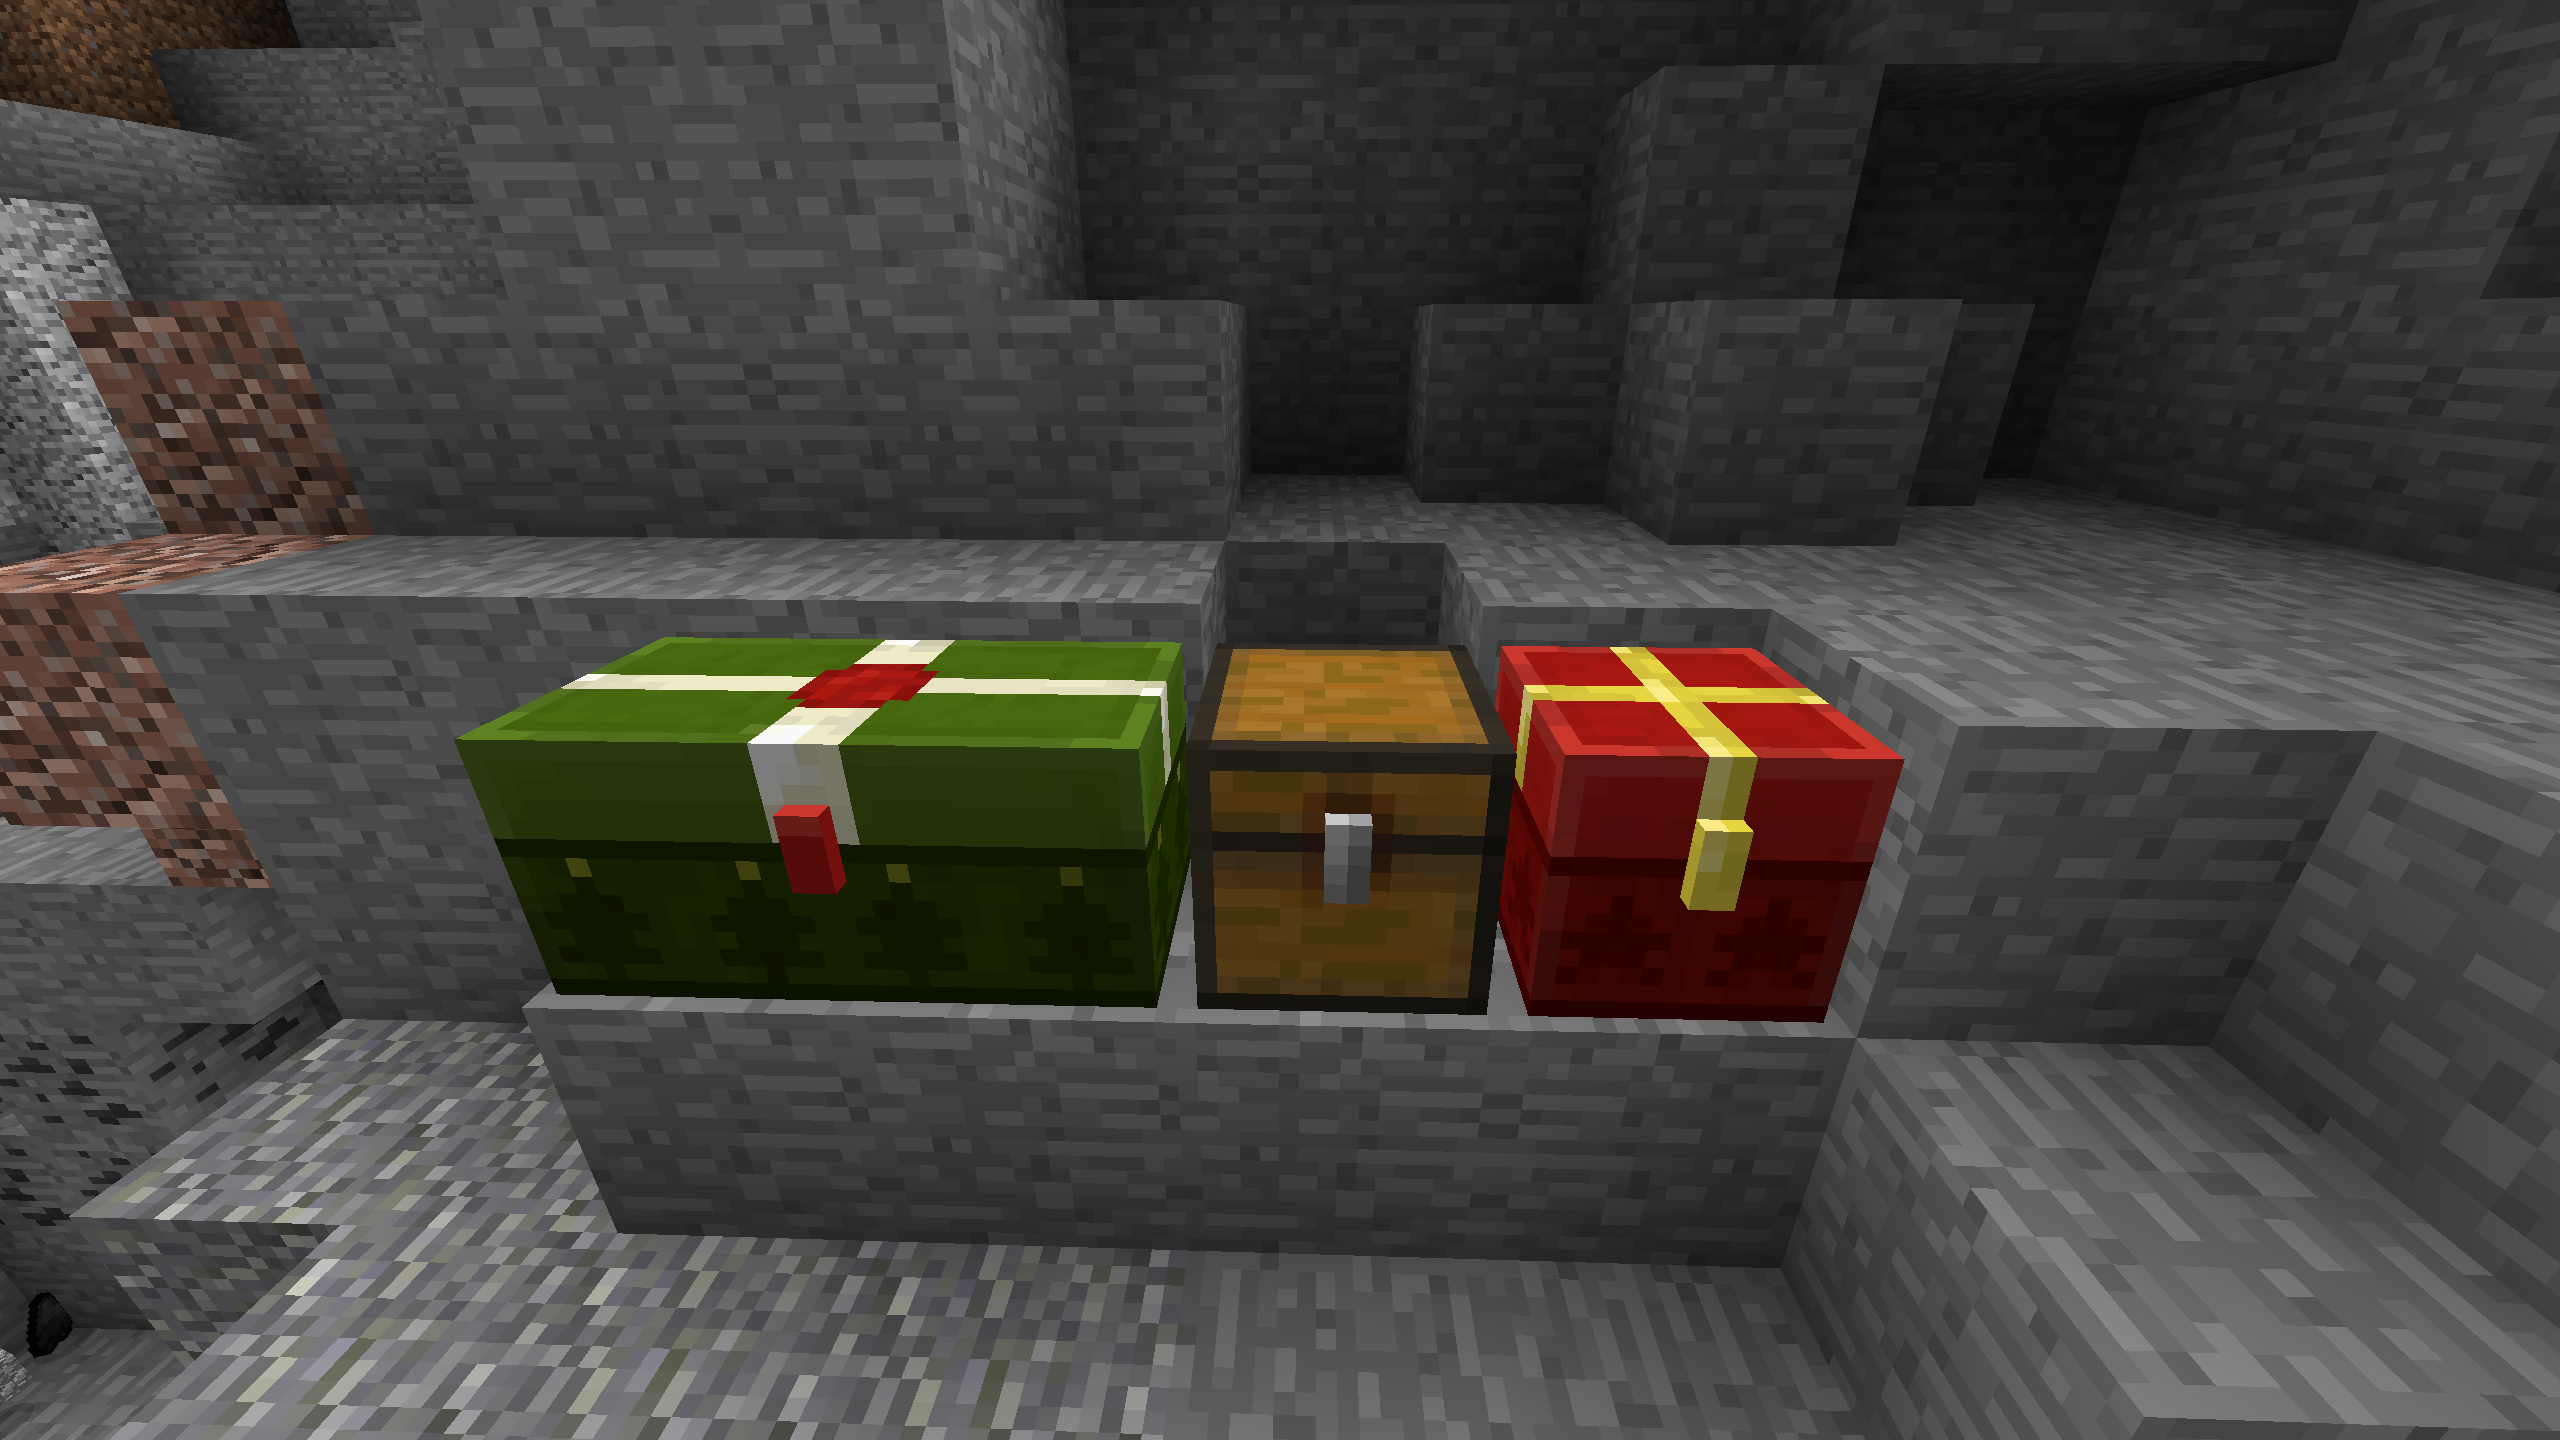 MC-42150] On Christmas trapped chests don't have texture of ...